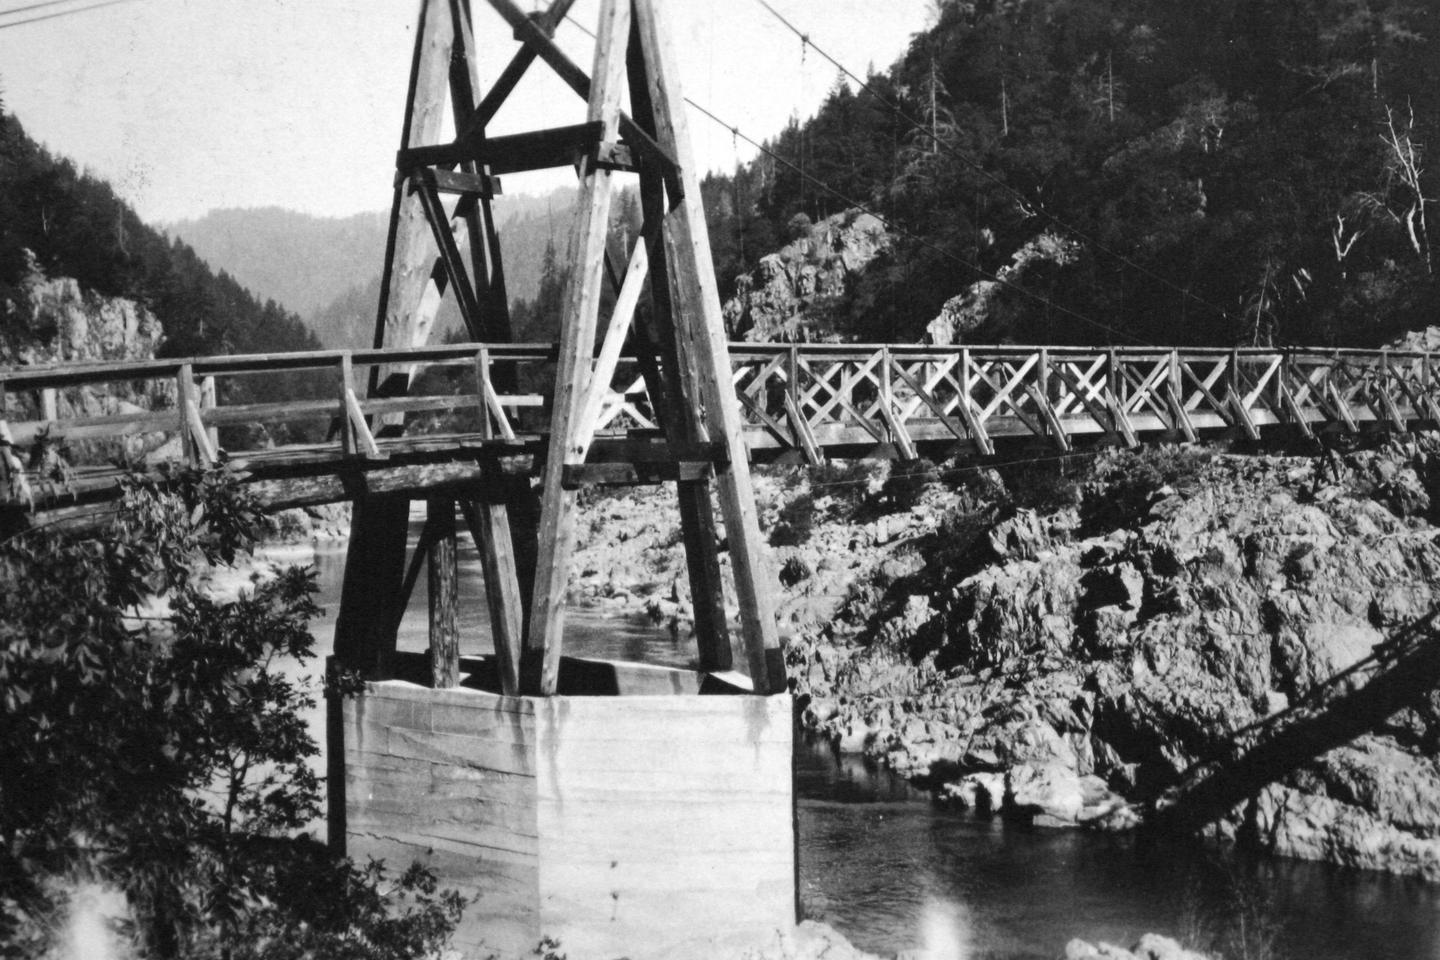 Sanderson's BridgeEarly day view of Sanderson's Bridge, a suspension crossing bridge.